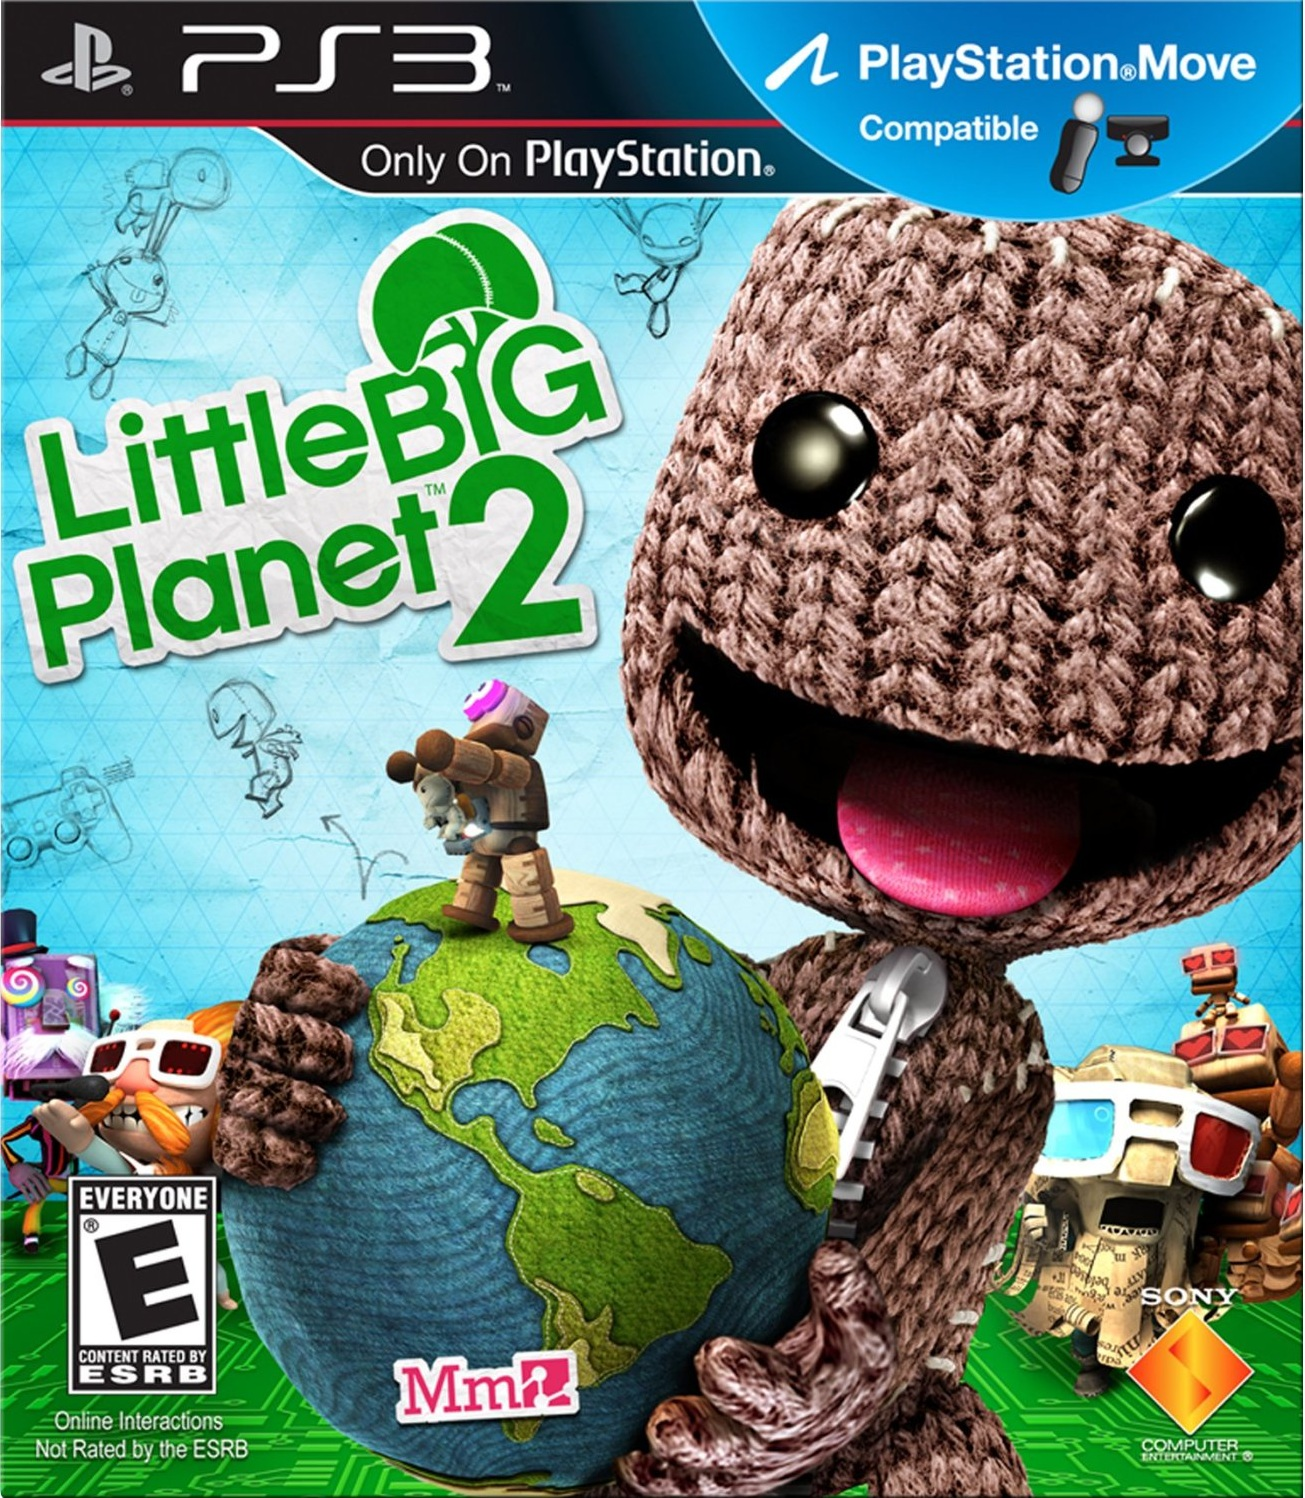 LittleBigPlanet-2-Cover-Art.jpg